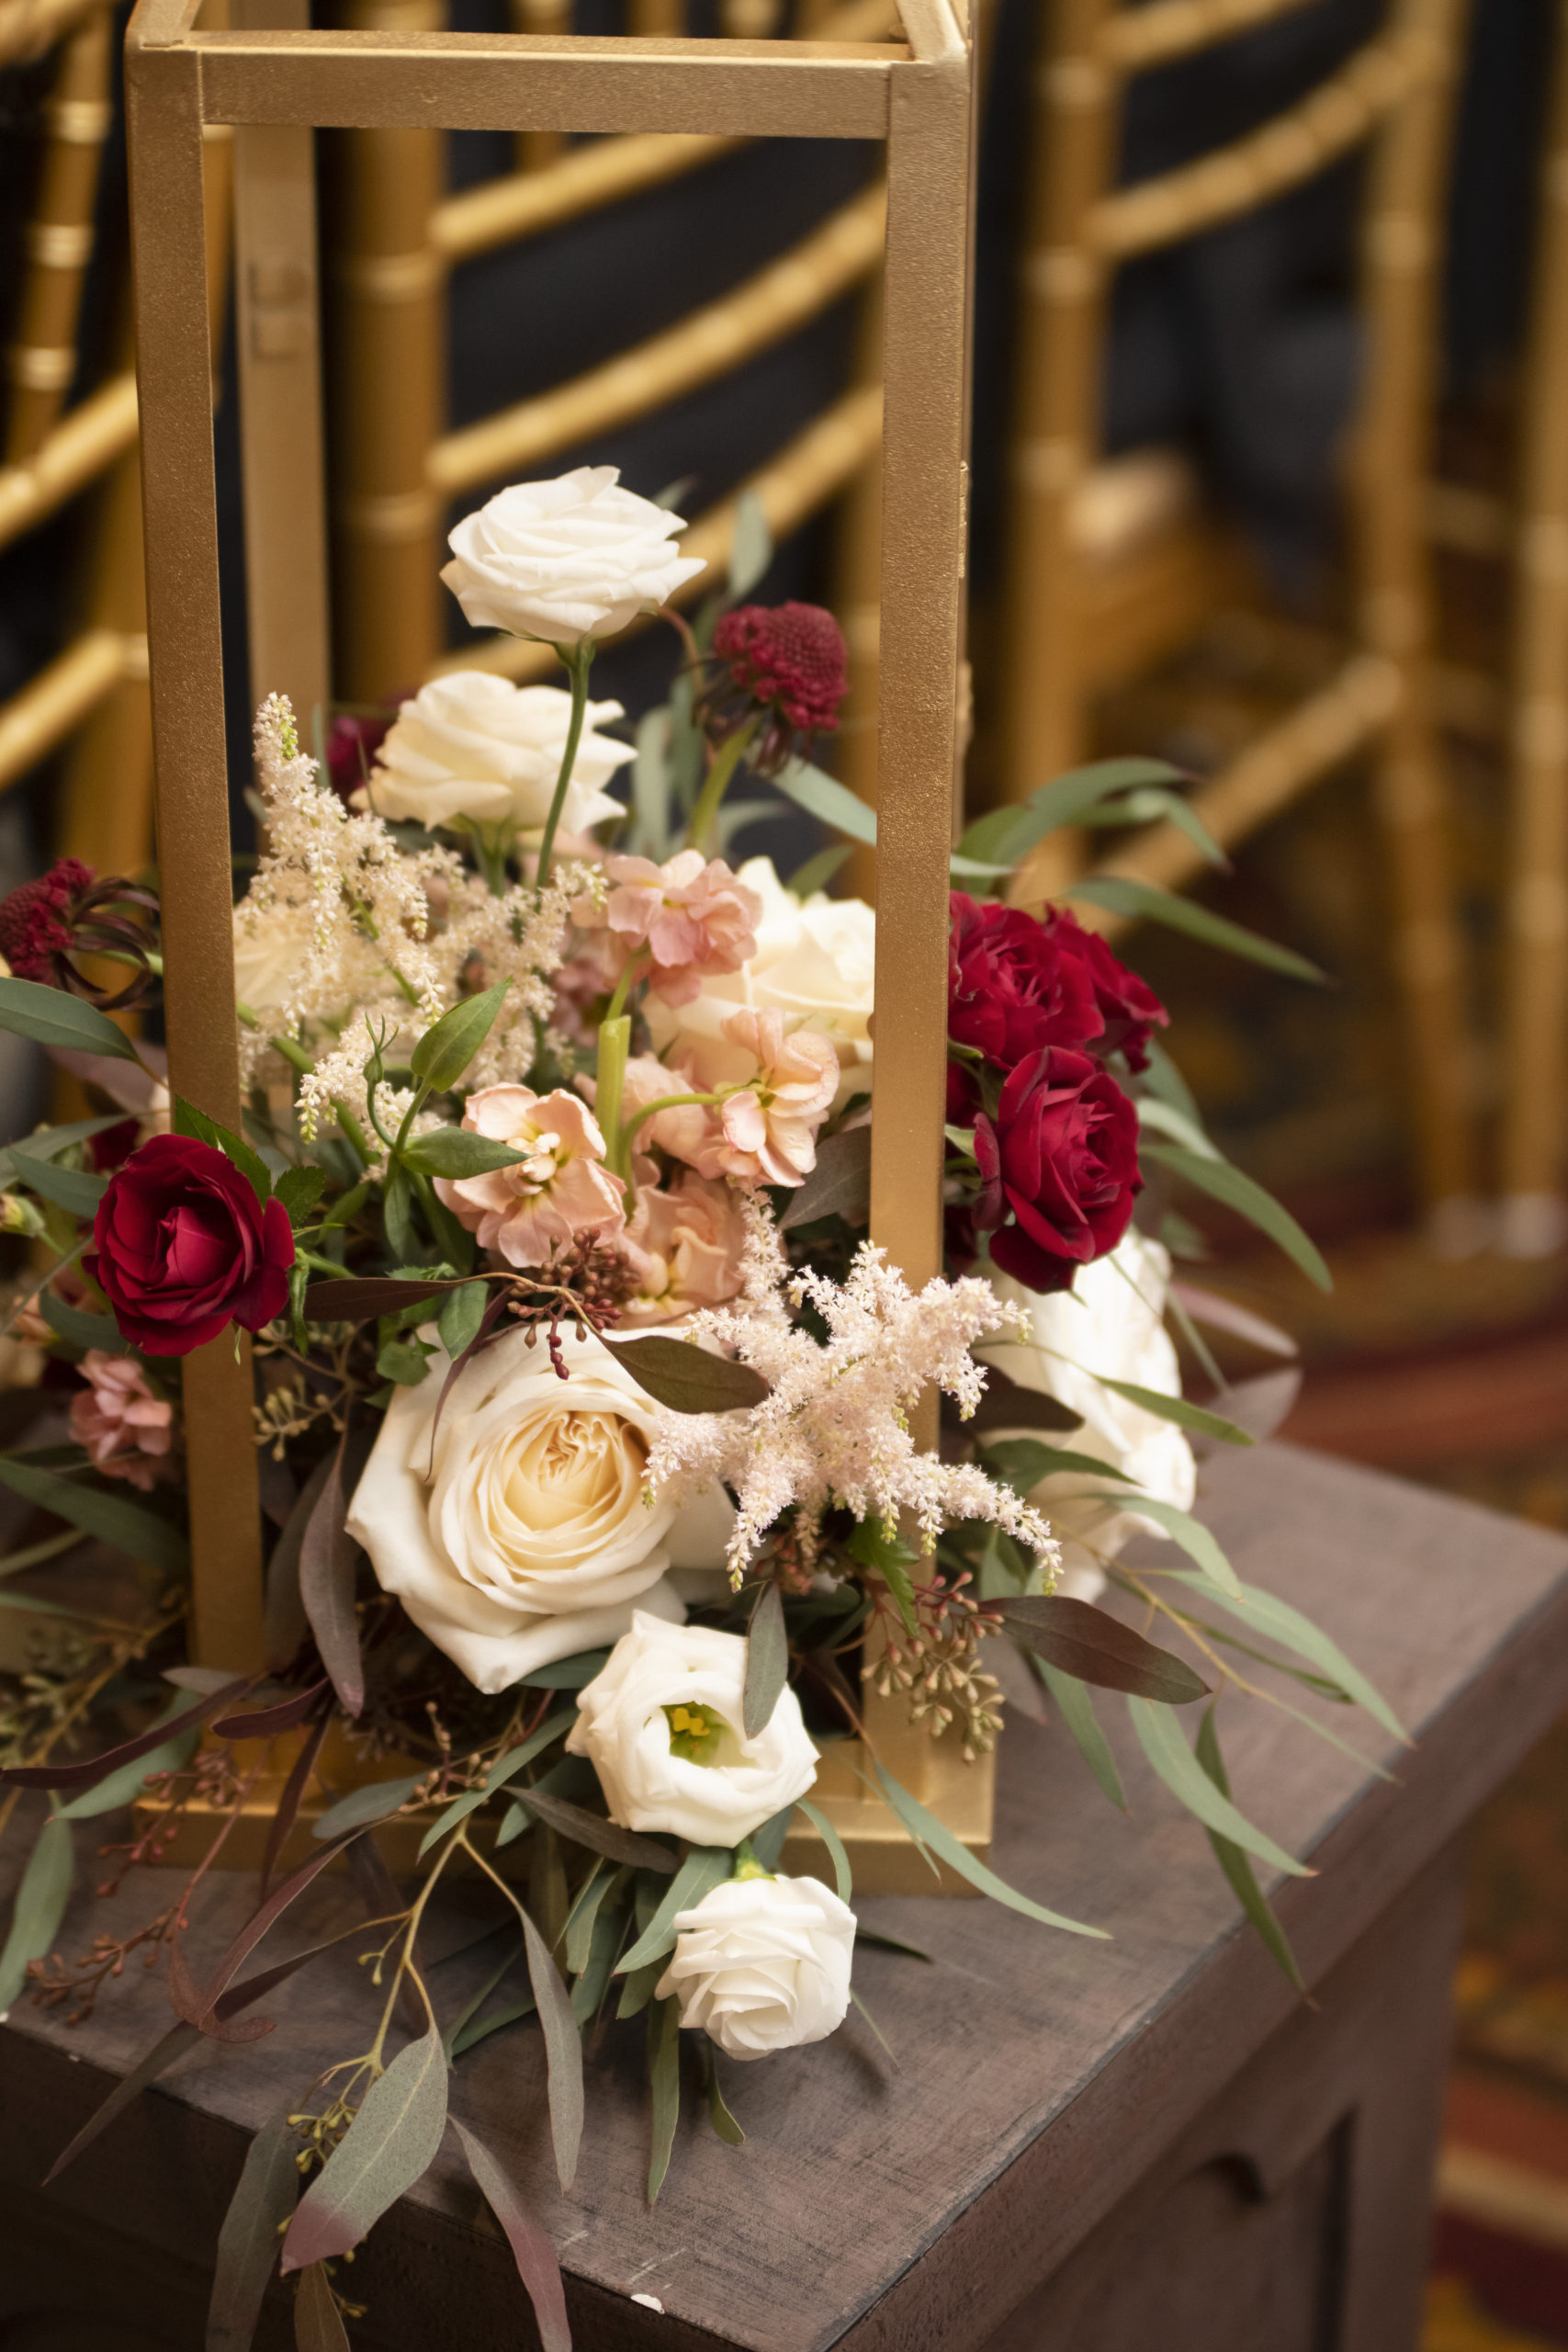 st-clements-castle-wedding-flowers-candis-floral-creations-3